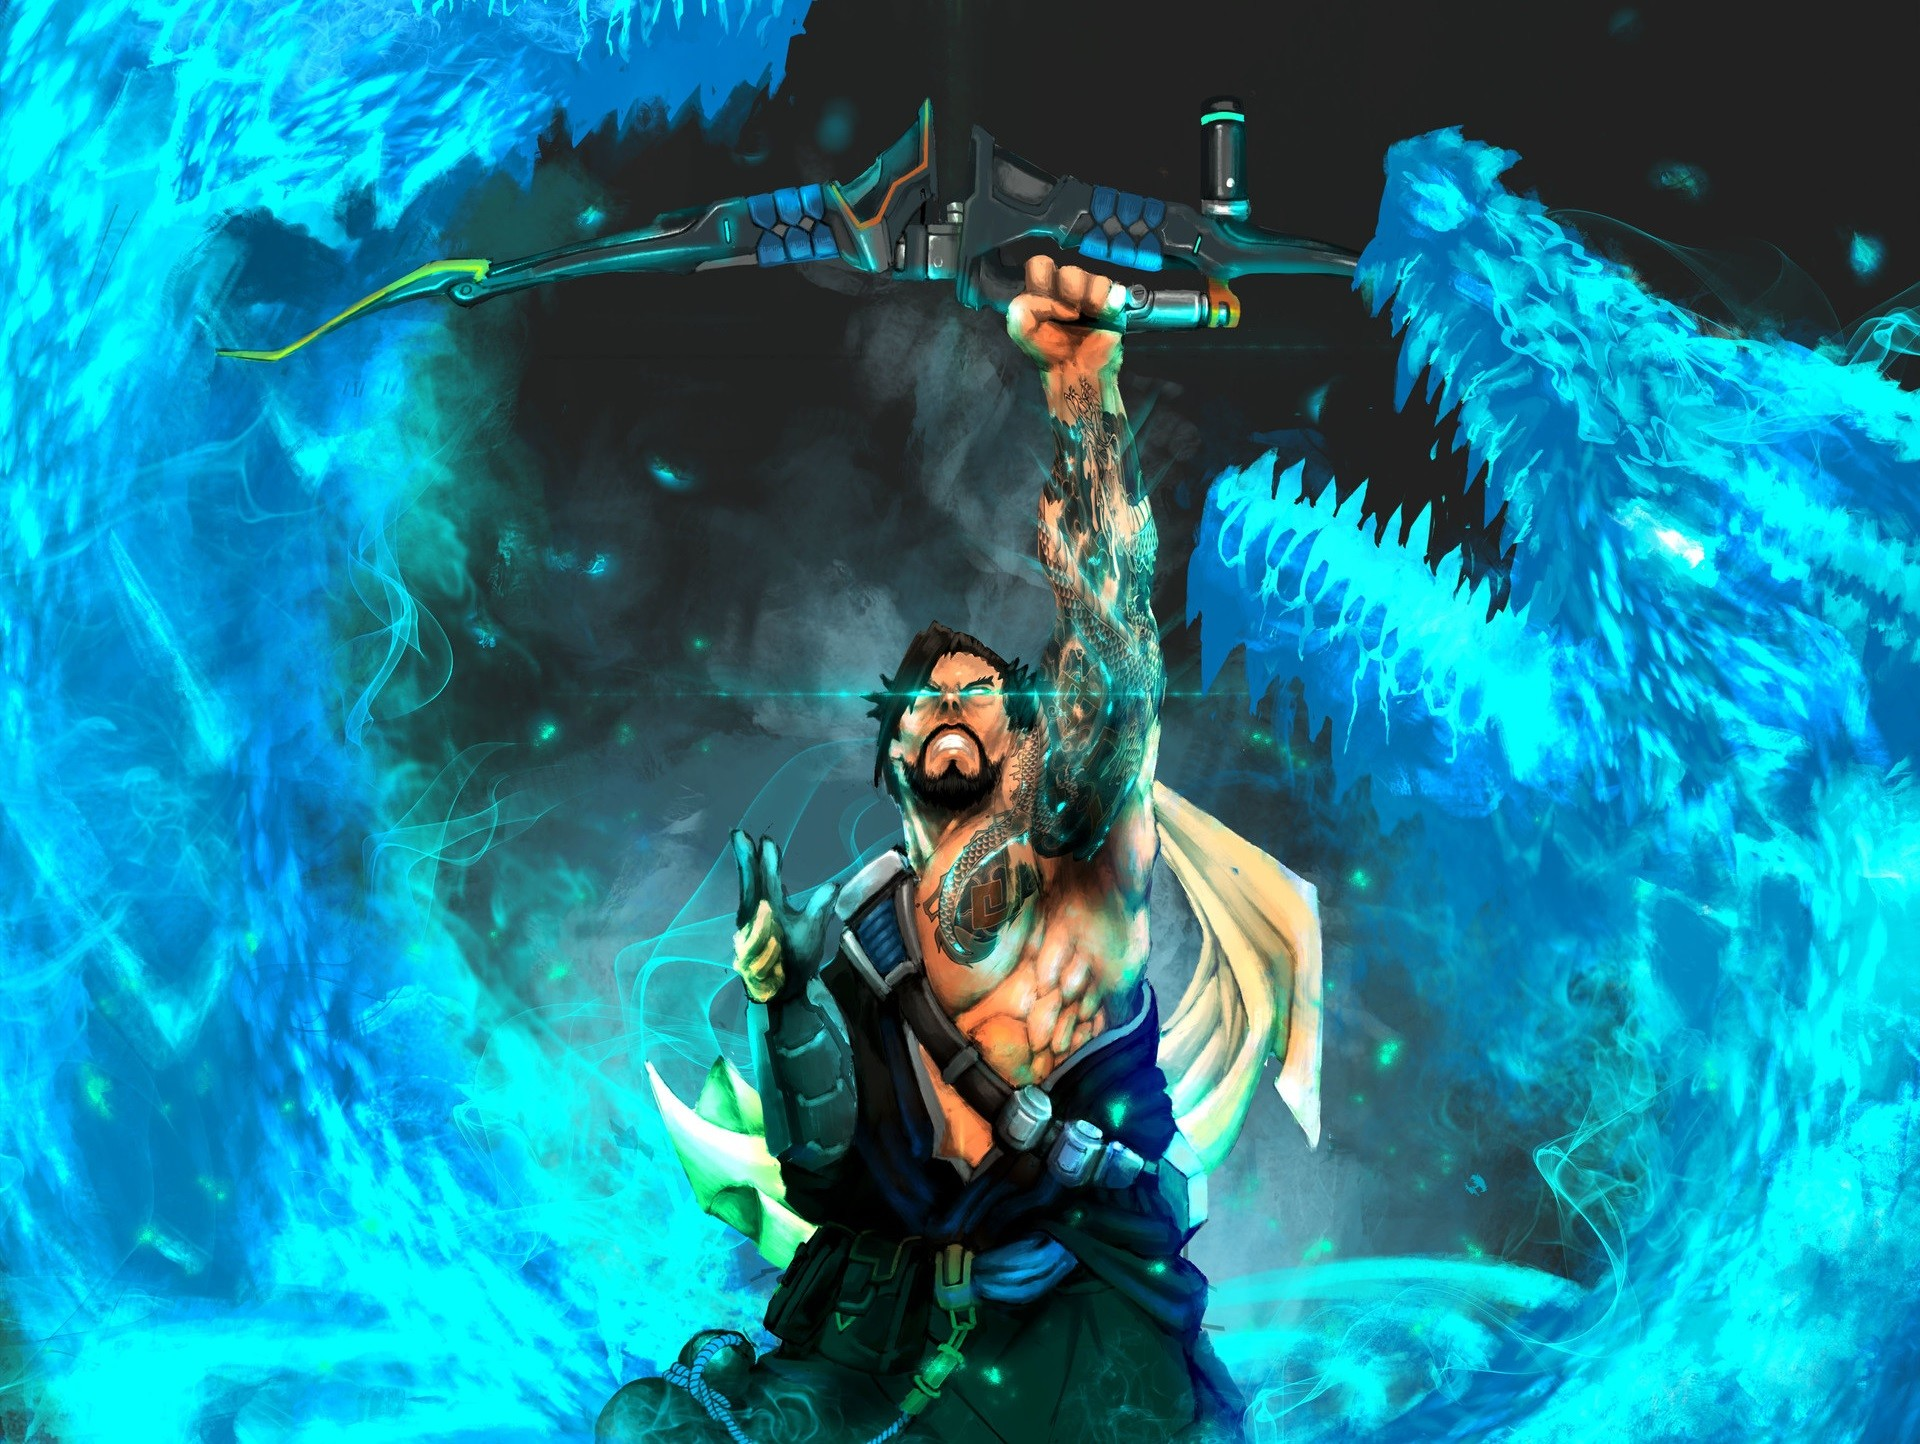 Overwatch Wallpaper 1080p Download Free Cool High: Overwatch Hanzo Wallpaper ·① Download Free Amazing